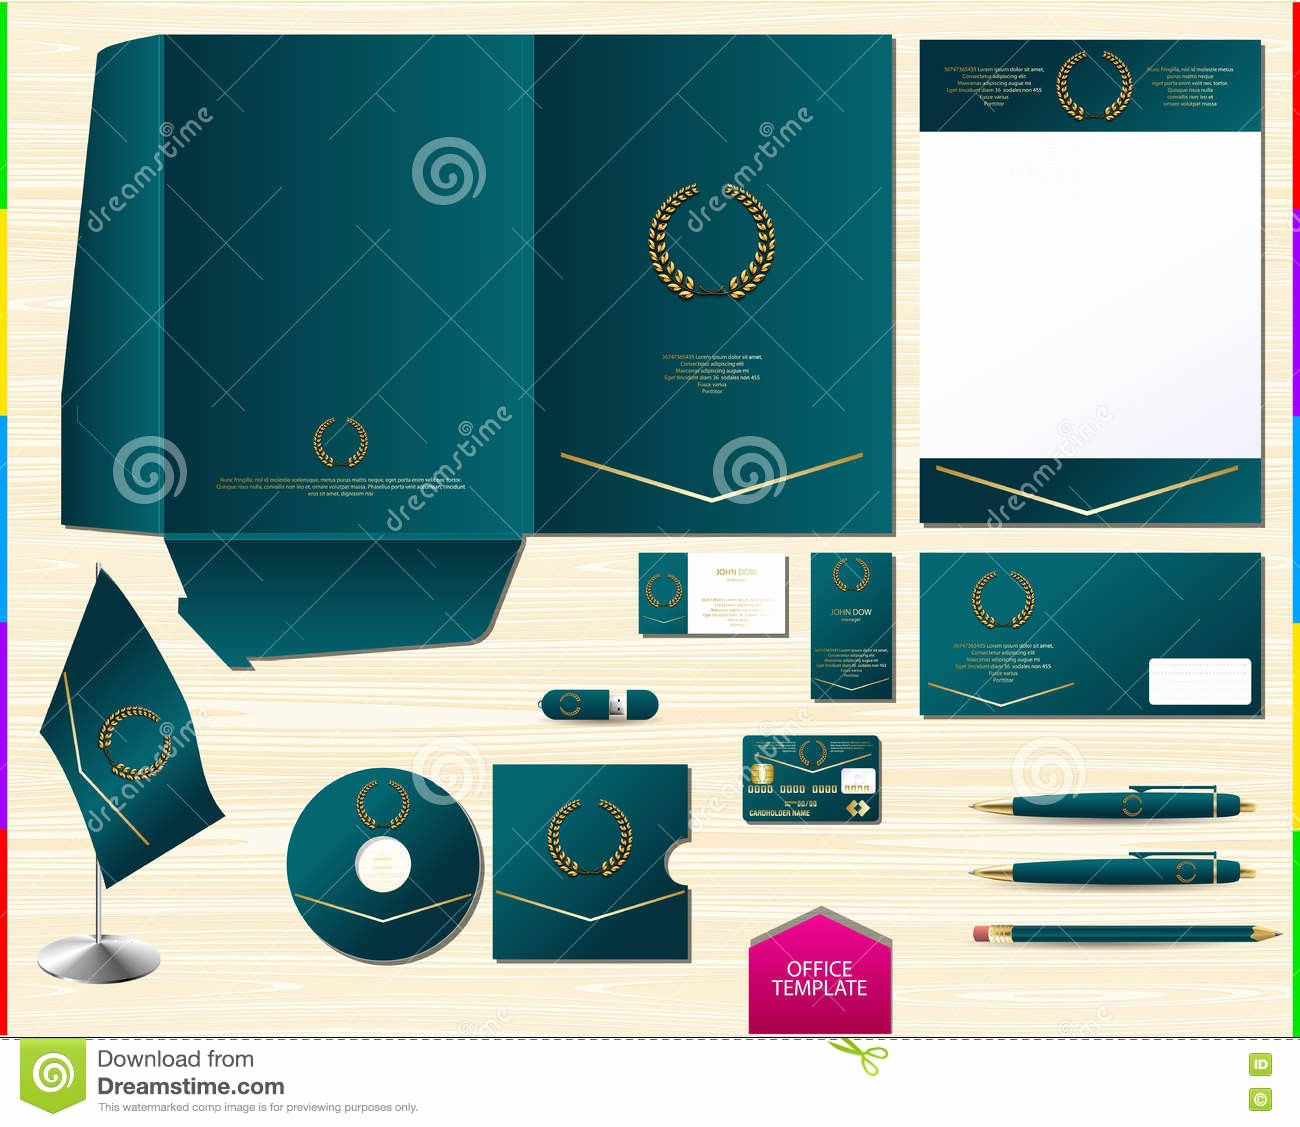 Souvenir Booklet Template Microsoft Word Awesome Vector Royal Turquoise Corporate Id Brand Book Template